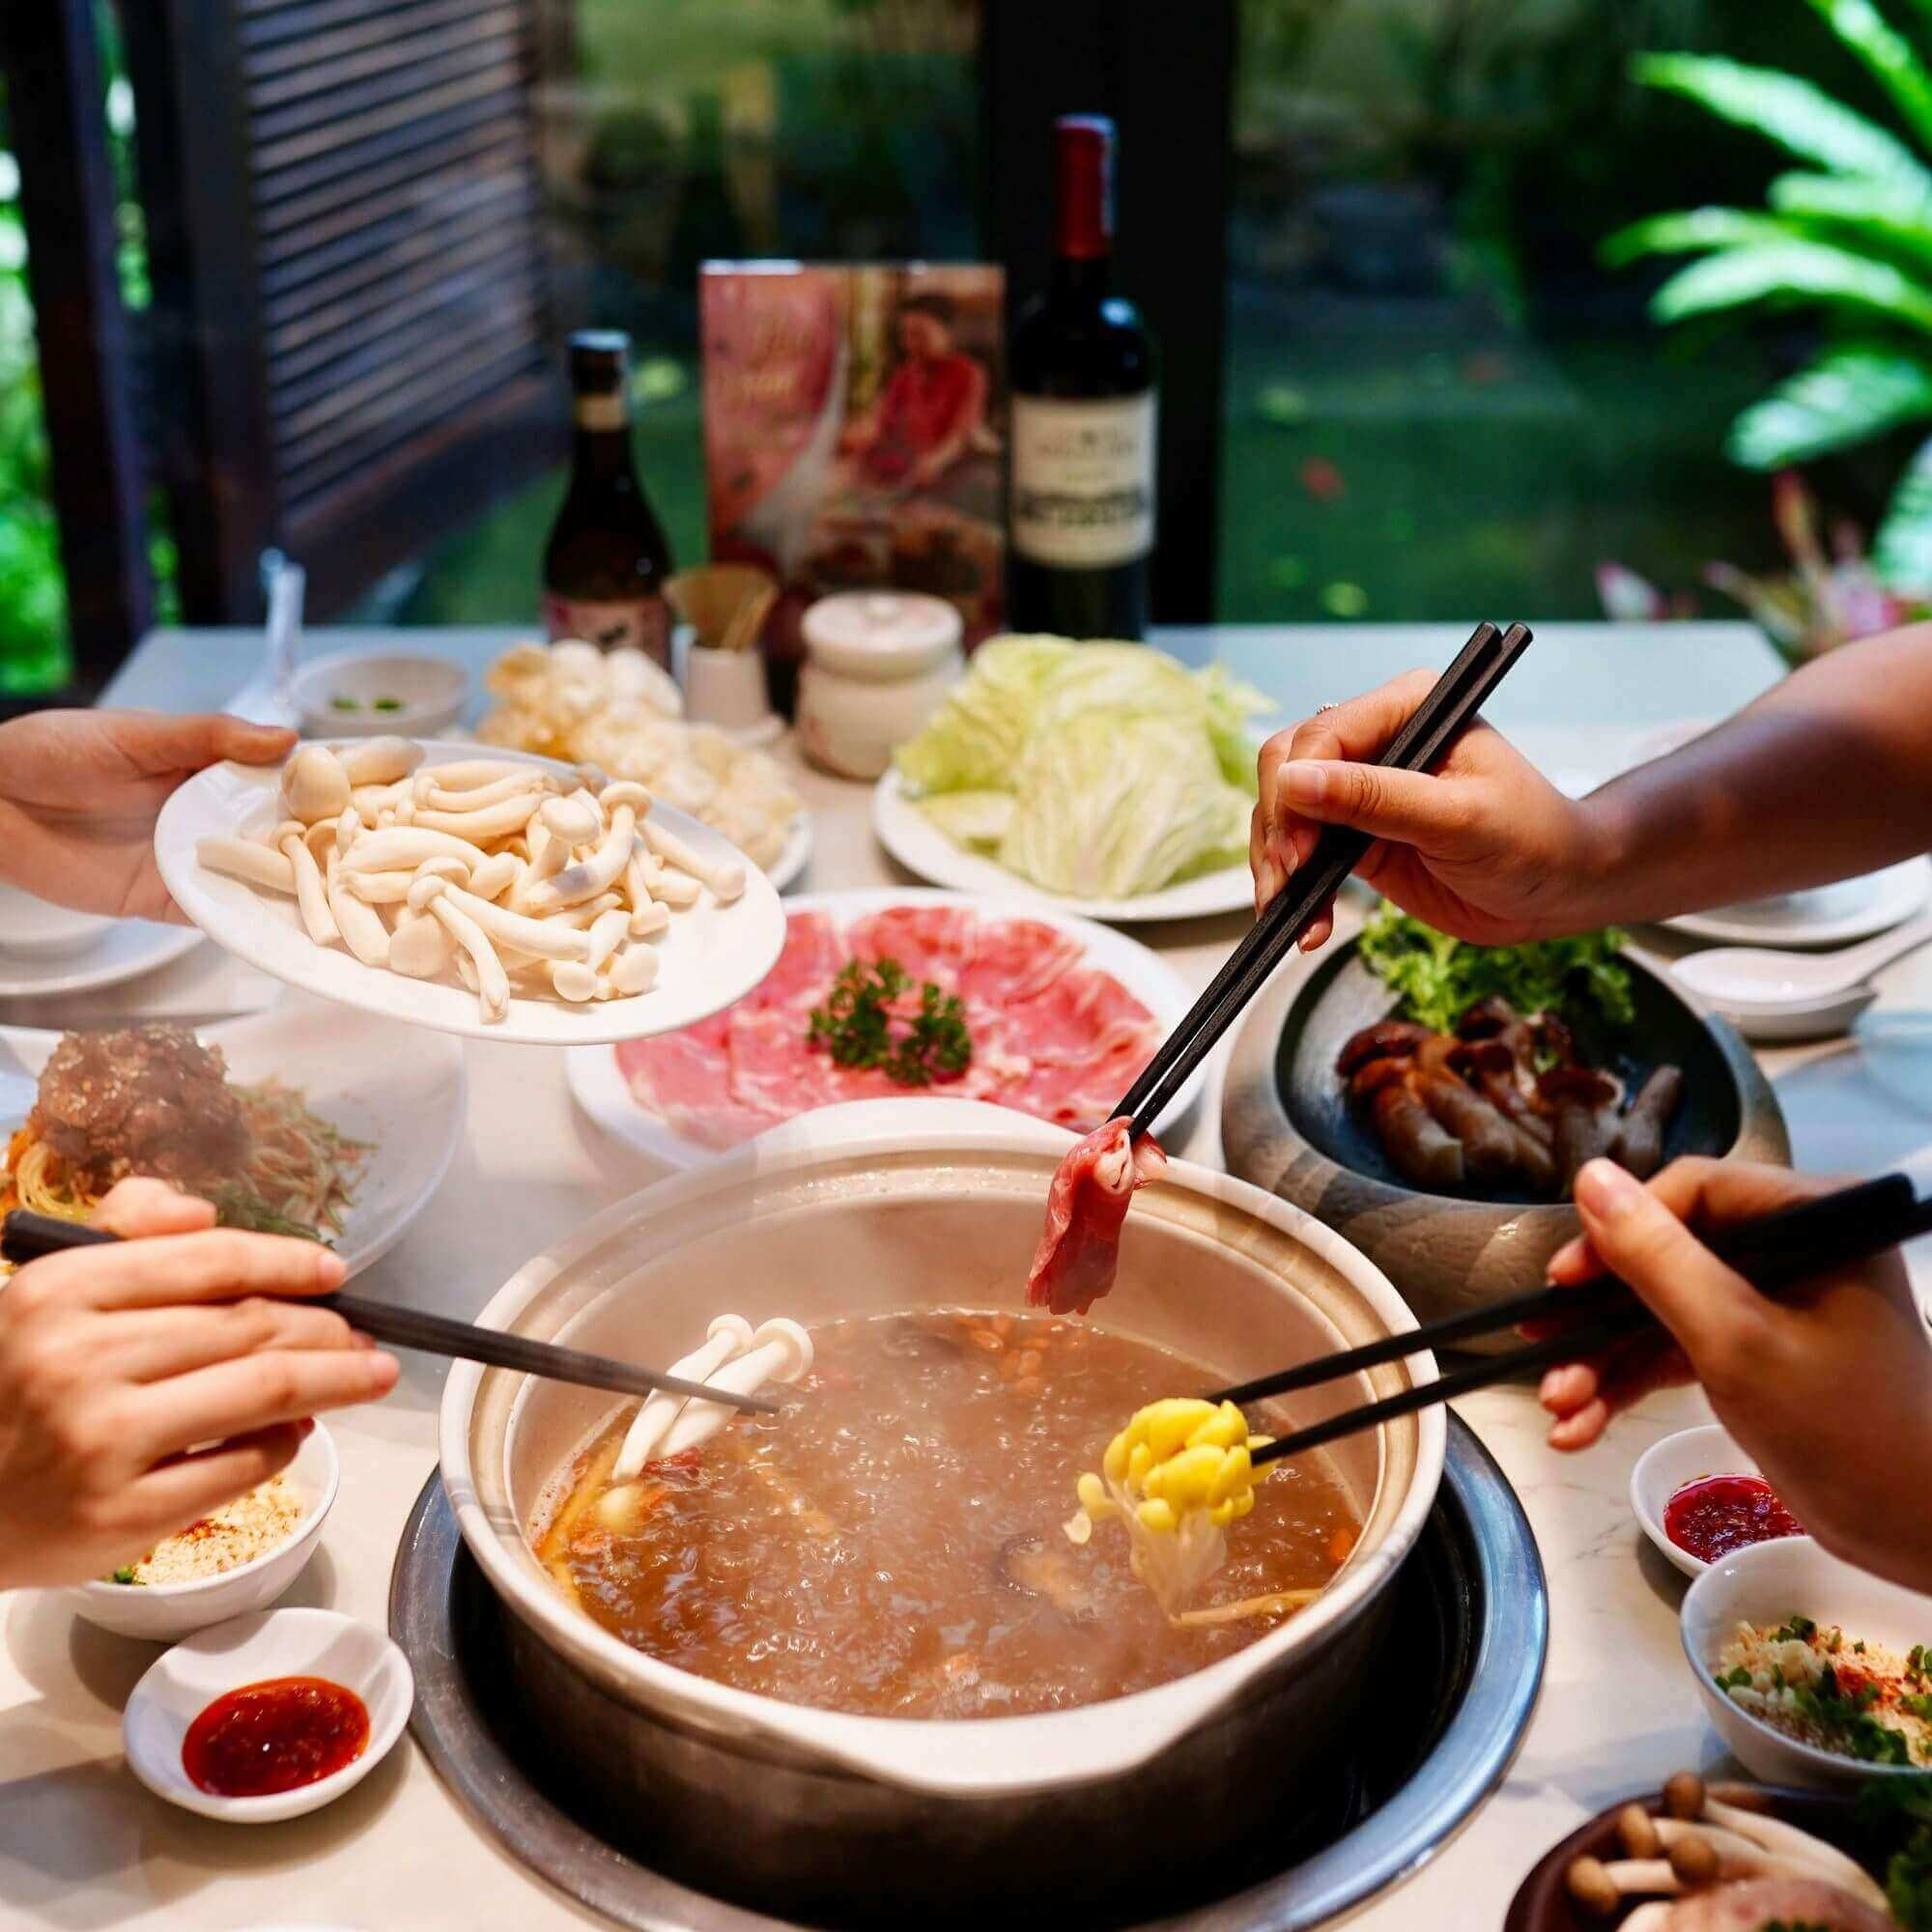 eating hotpot is ideal in ho chi minh city at night